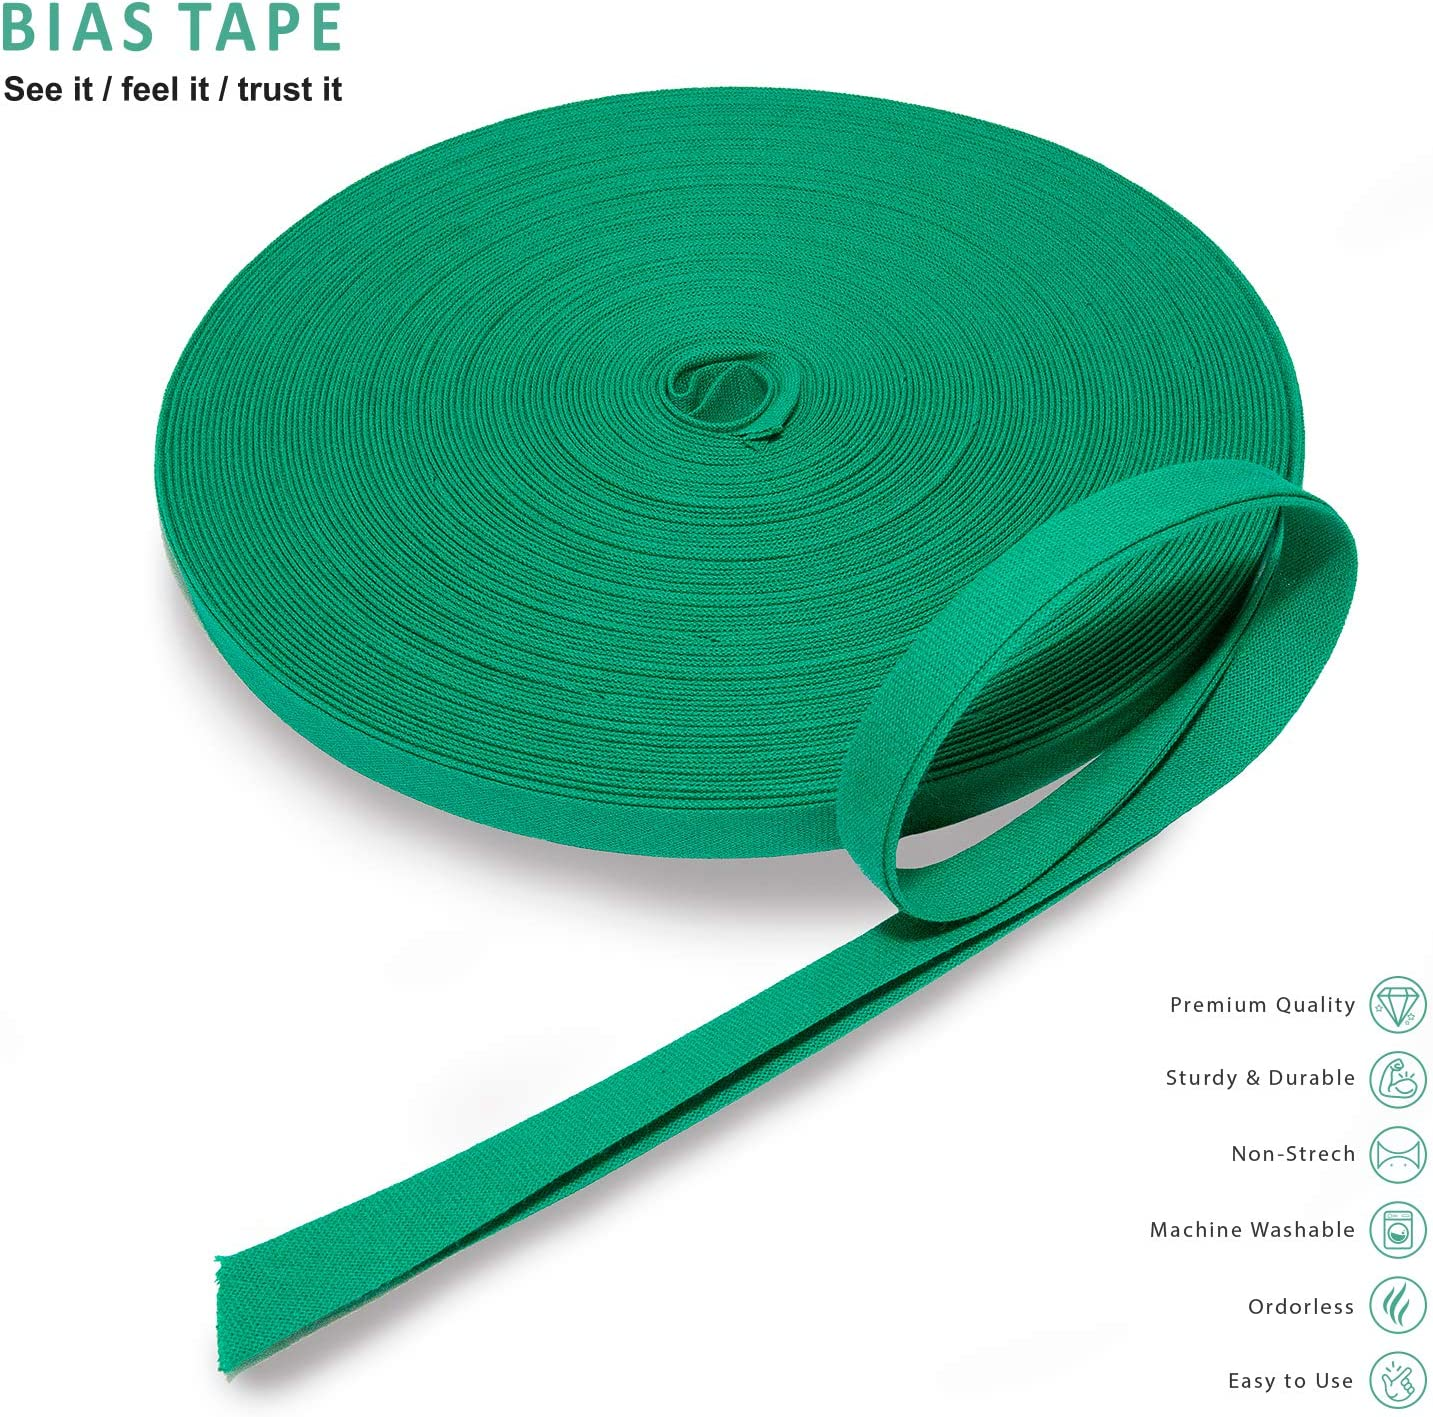 """Turquoise Pre-Folded Binding Tape Sewing Bias Binding 0.5/"""" Diameter 27 Yards Long Cotton Color Sewing Bias Tape Bias Tape for Quilting Hemming Seams and More Double Fold Bias Tape Sewing"""